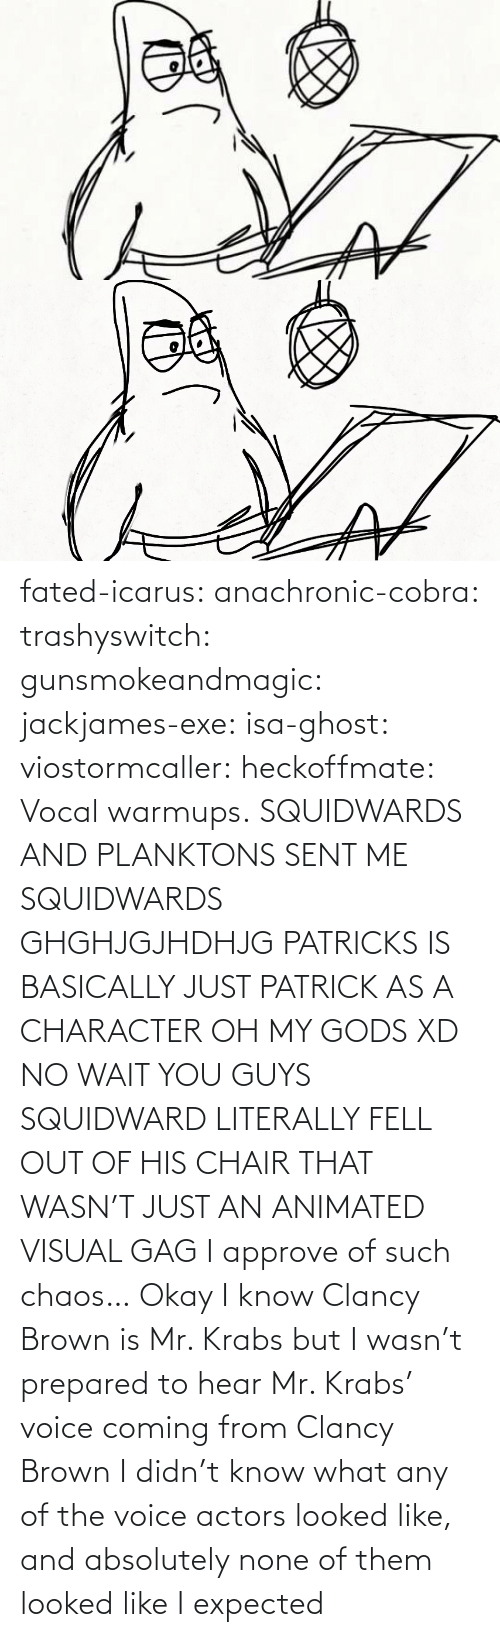 media: fated-icarus:  anachronic-cobra: trashyswitch:  gunsmokeandmagic:  jackjames-exe:  isa-ghost:   viostormcaller:  heckoffmate: Vocal warmups. SQUIDWARDS AND PLANKTONS SENT ME  SQUIDWARDS GHGHJGJHDHJG   PATRICKS IS BASICALLY JUST PATRICK AS A CHARACTER OH MY GODS XD   NO WAIT YOU GUYS SQUIDWARD LITERALLY FELL OUT OF HIS CHAIR THAT WASN'T JUST AN ANIMATED VISUAL GAG    I approve of such chaos…    Okay I know Clancy Brown is Mr. Krabs but I wasn't prepared to hear Mr. Krabs' voice coming from Clancy Brown    I didn't know what any of the voice actors looked like, and absolutely none of them looked like I expected